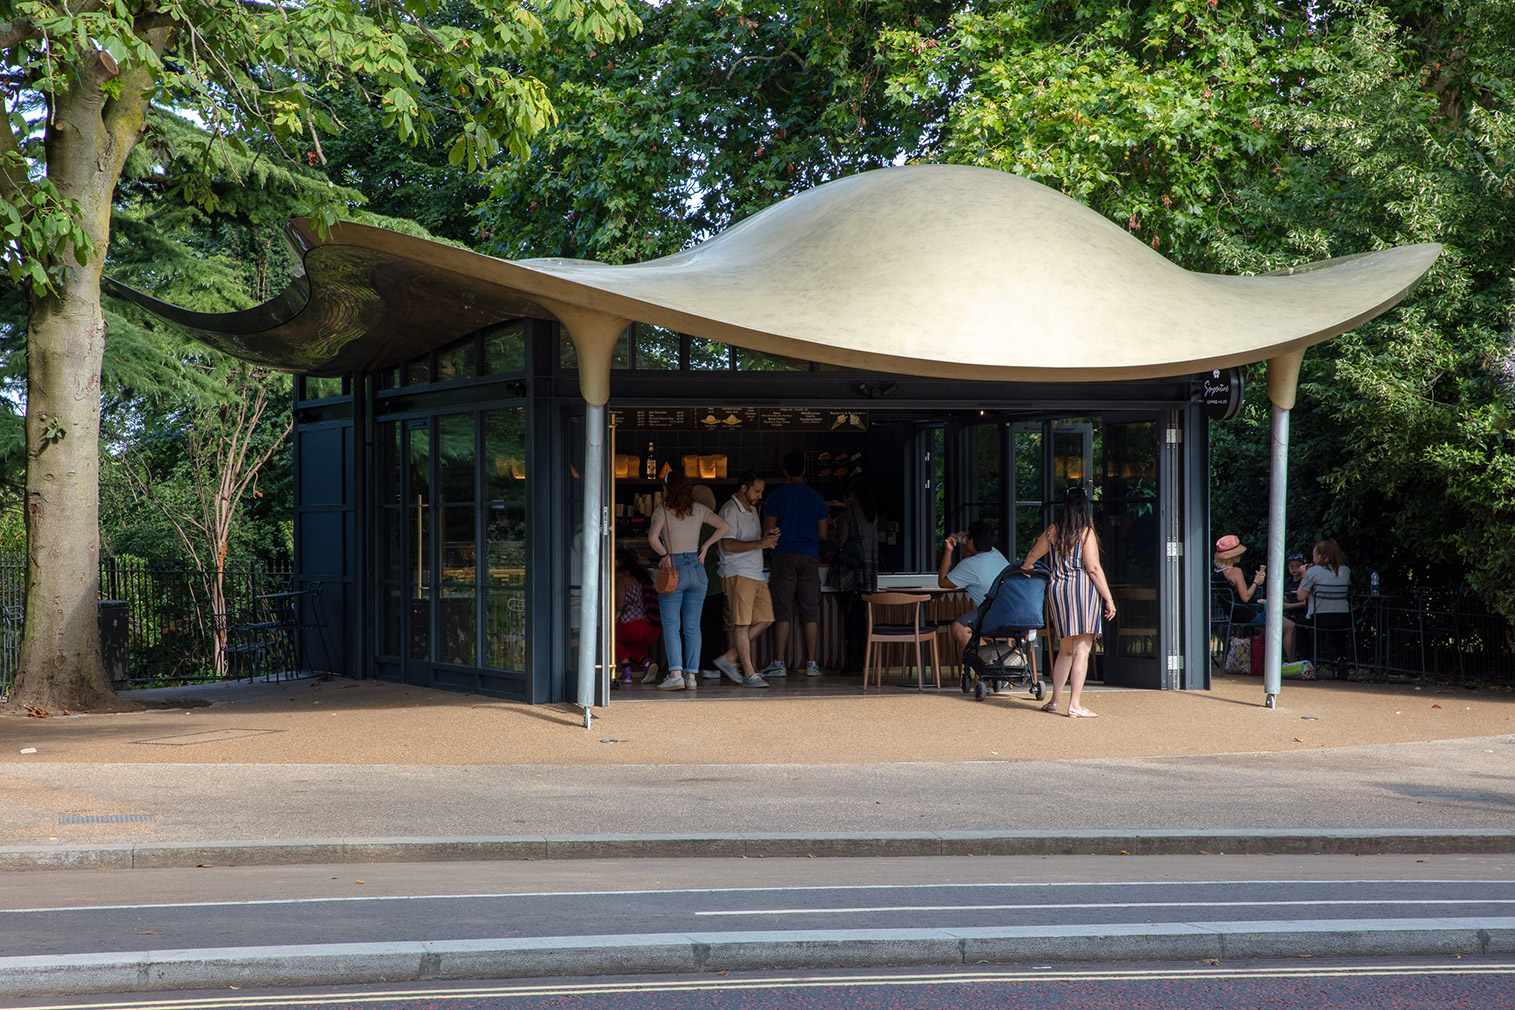 A new 'floating' pavilion has opened in Hyde Park in the form of a skeletal cafe by Mizzi Studio.